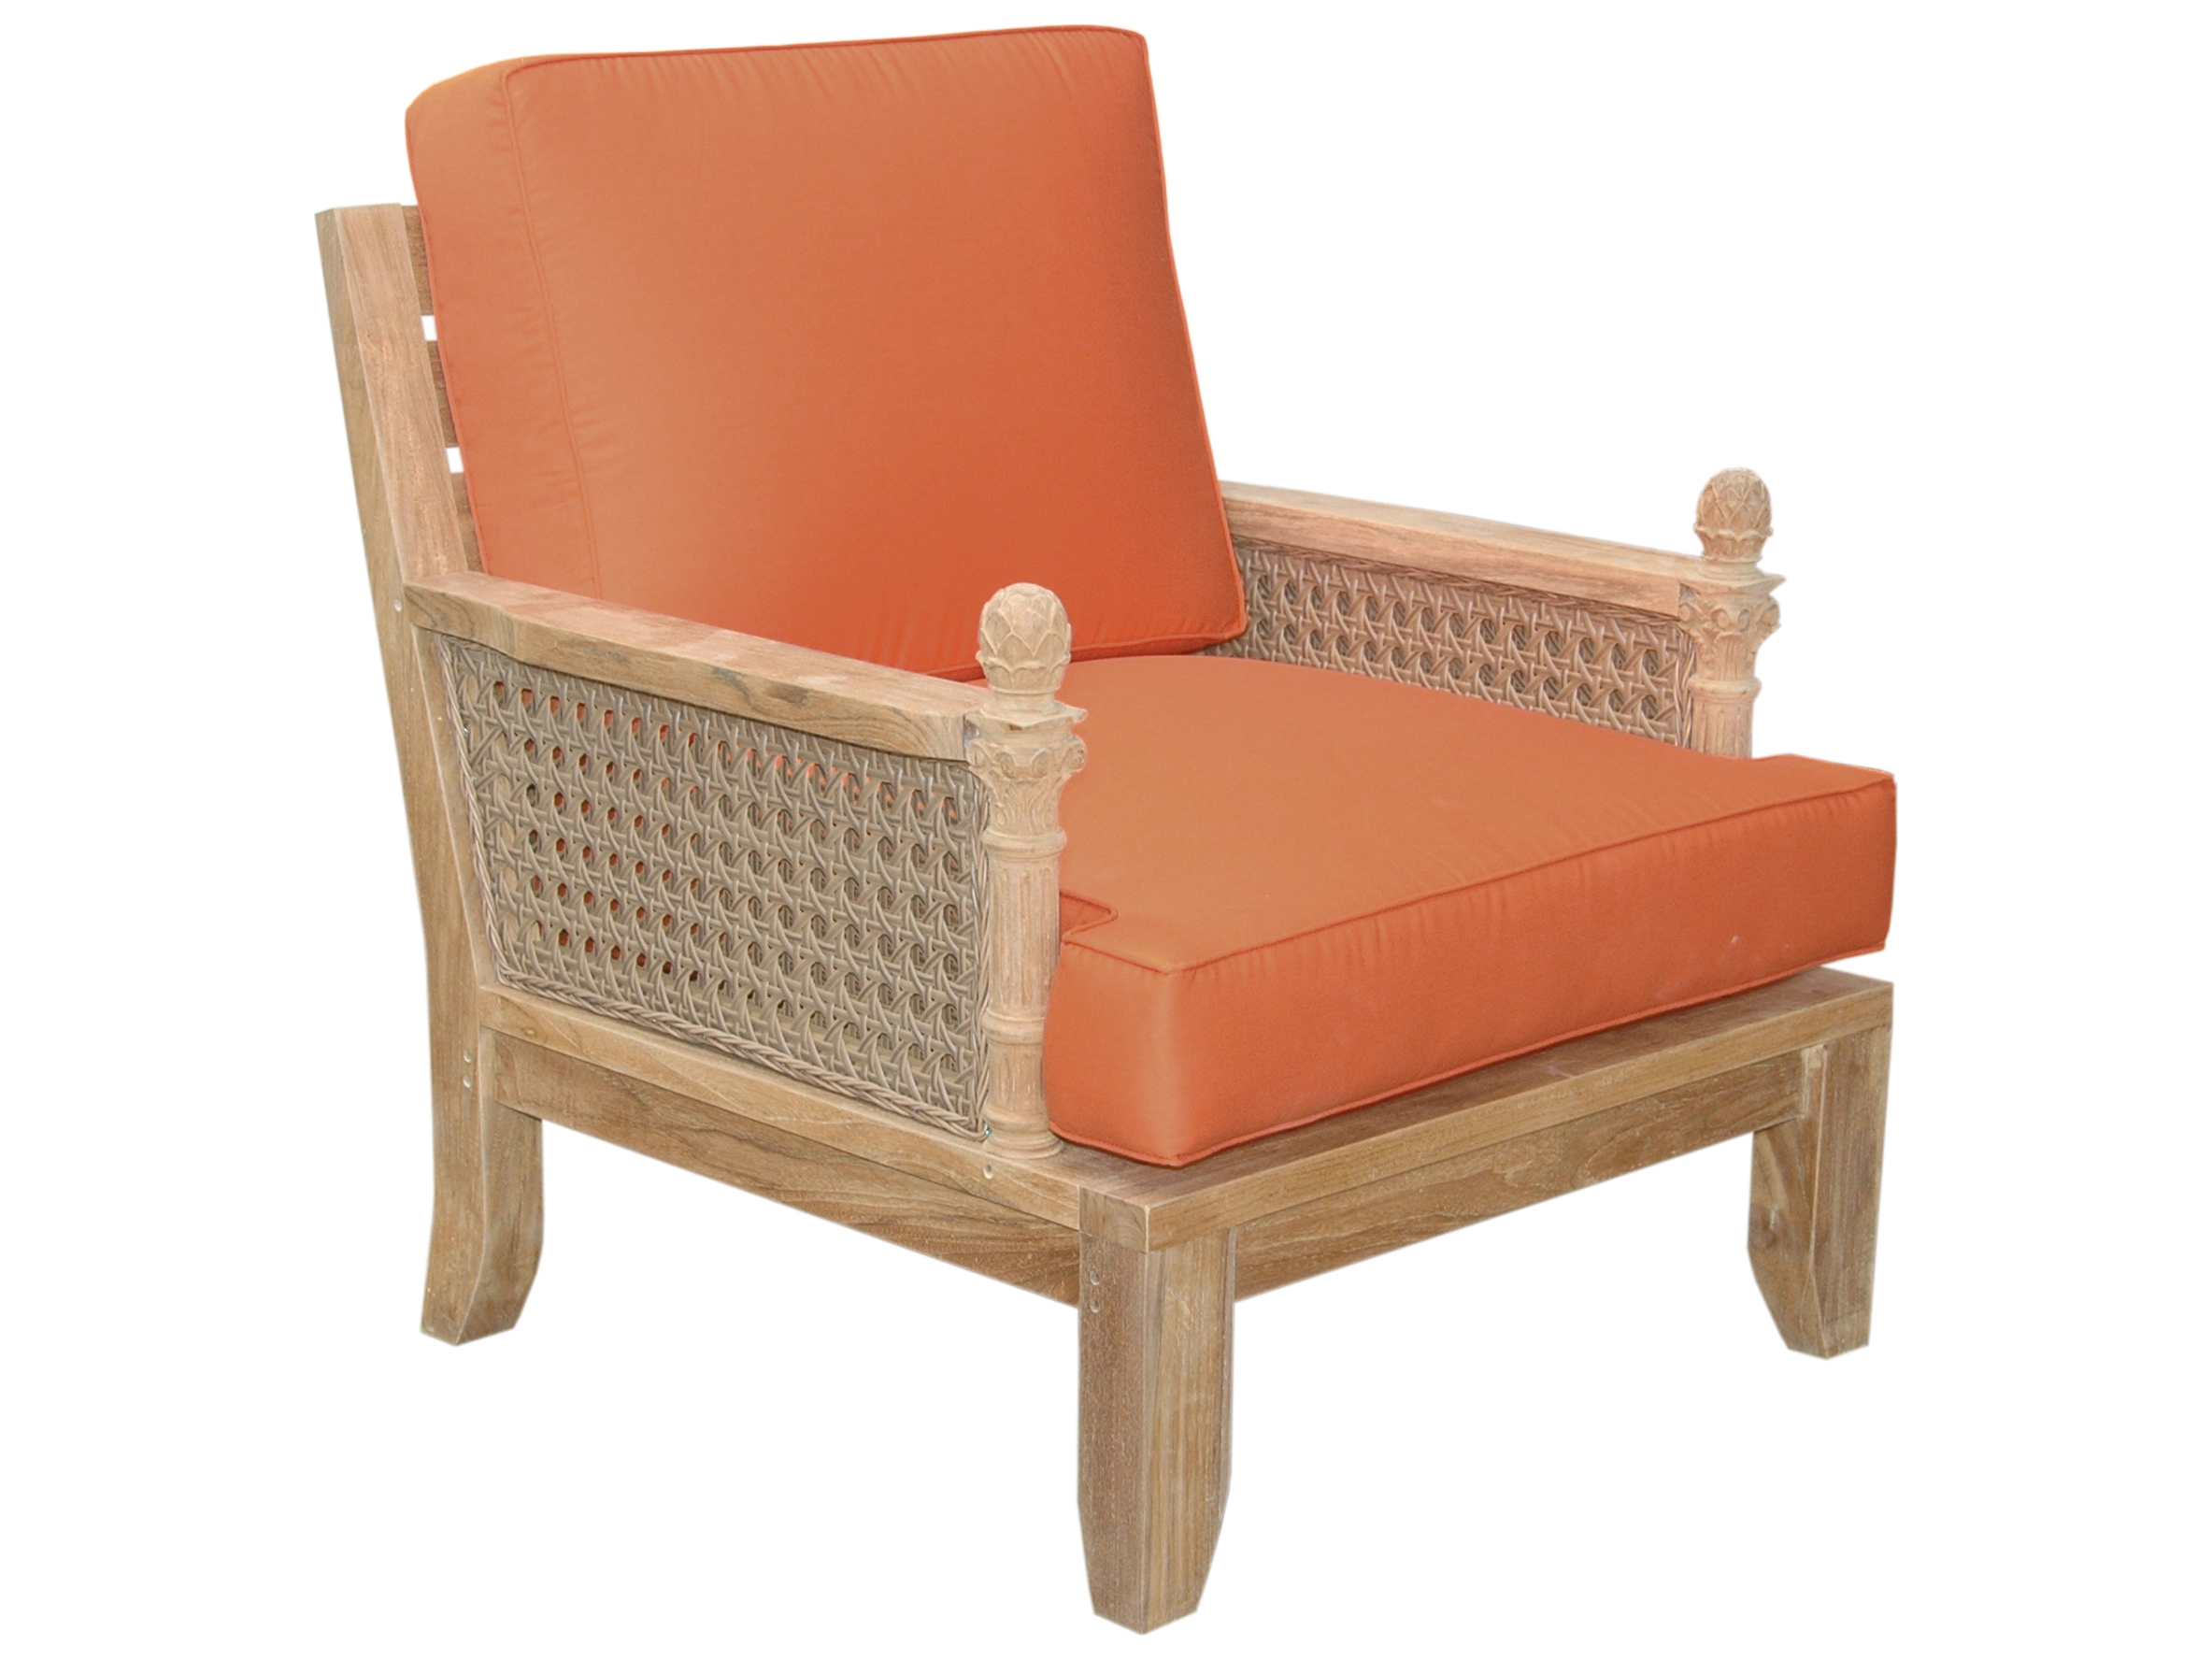 Teak Sessel Danish Teak Armchair Cushions Teak Armchair Including Full Sunbrella